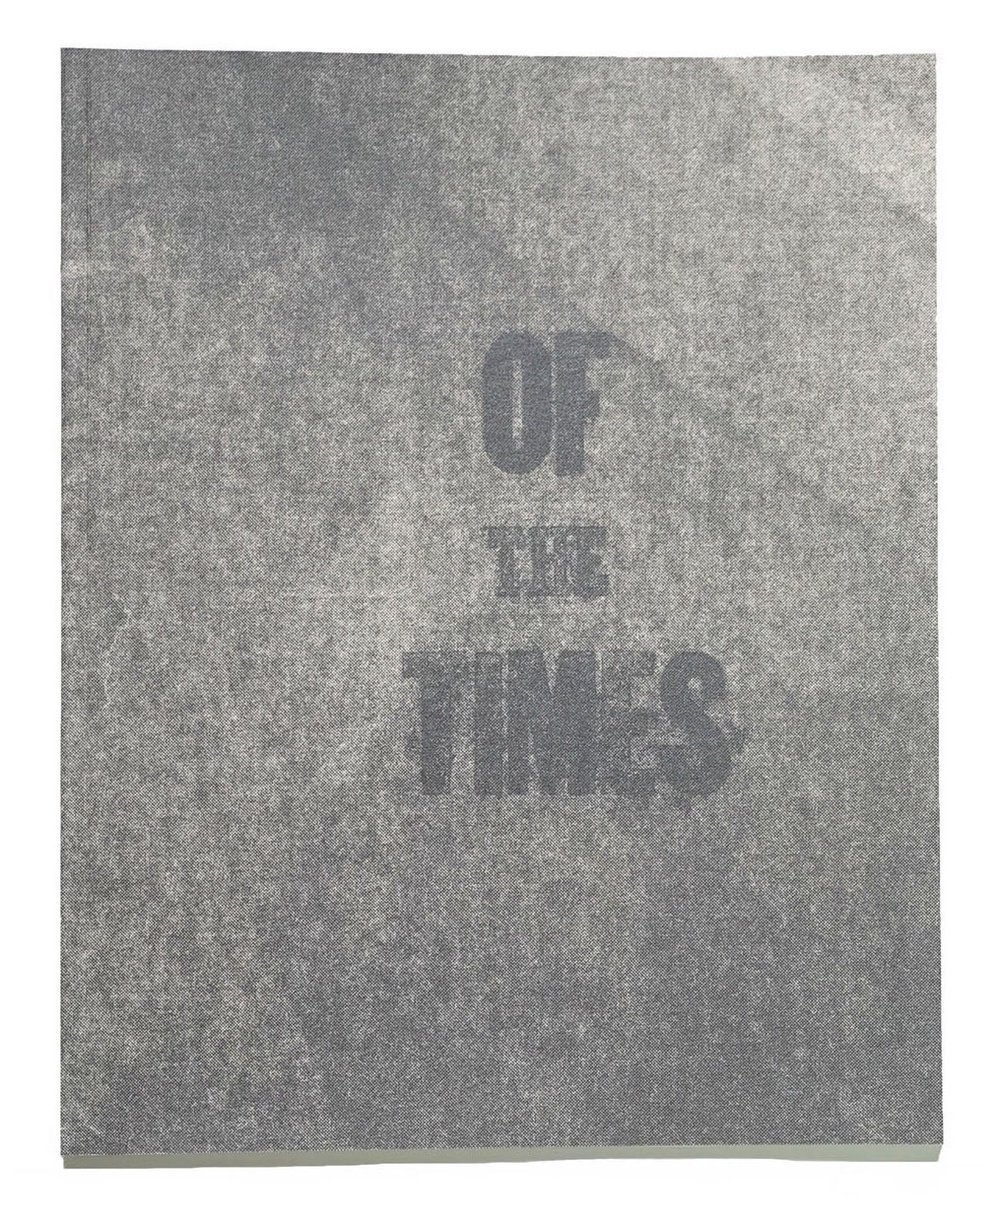 OF THE TIMES,  screen print, risograph & letterpress, edition 30, 2017.